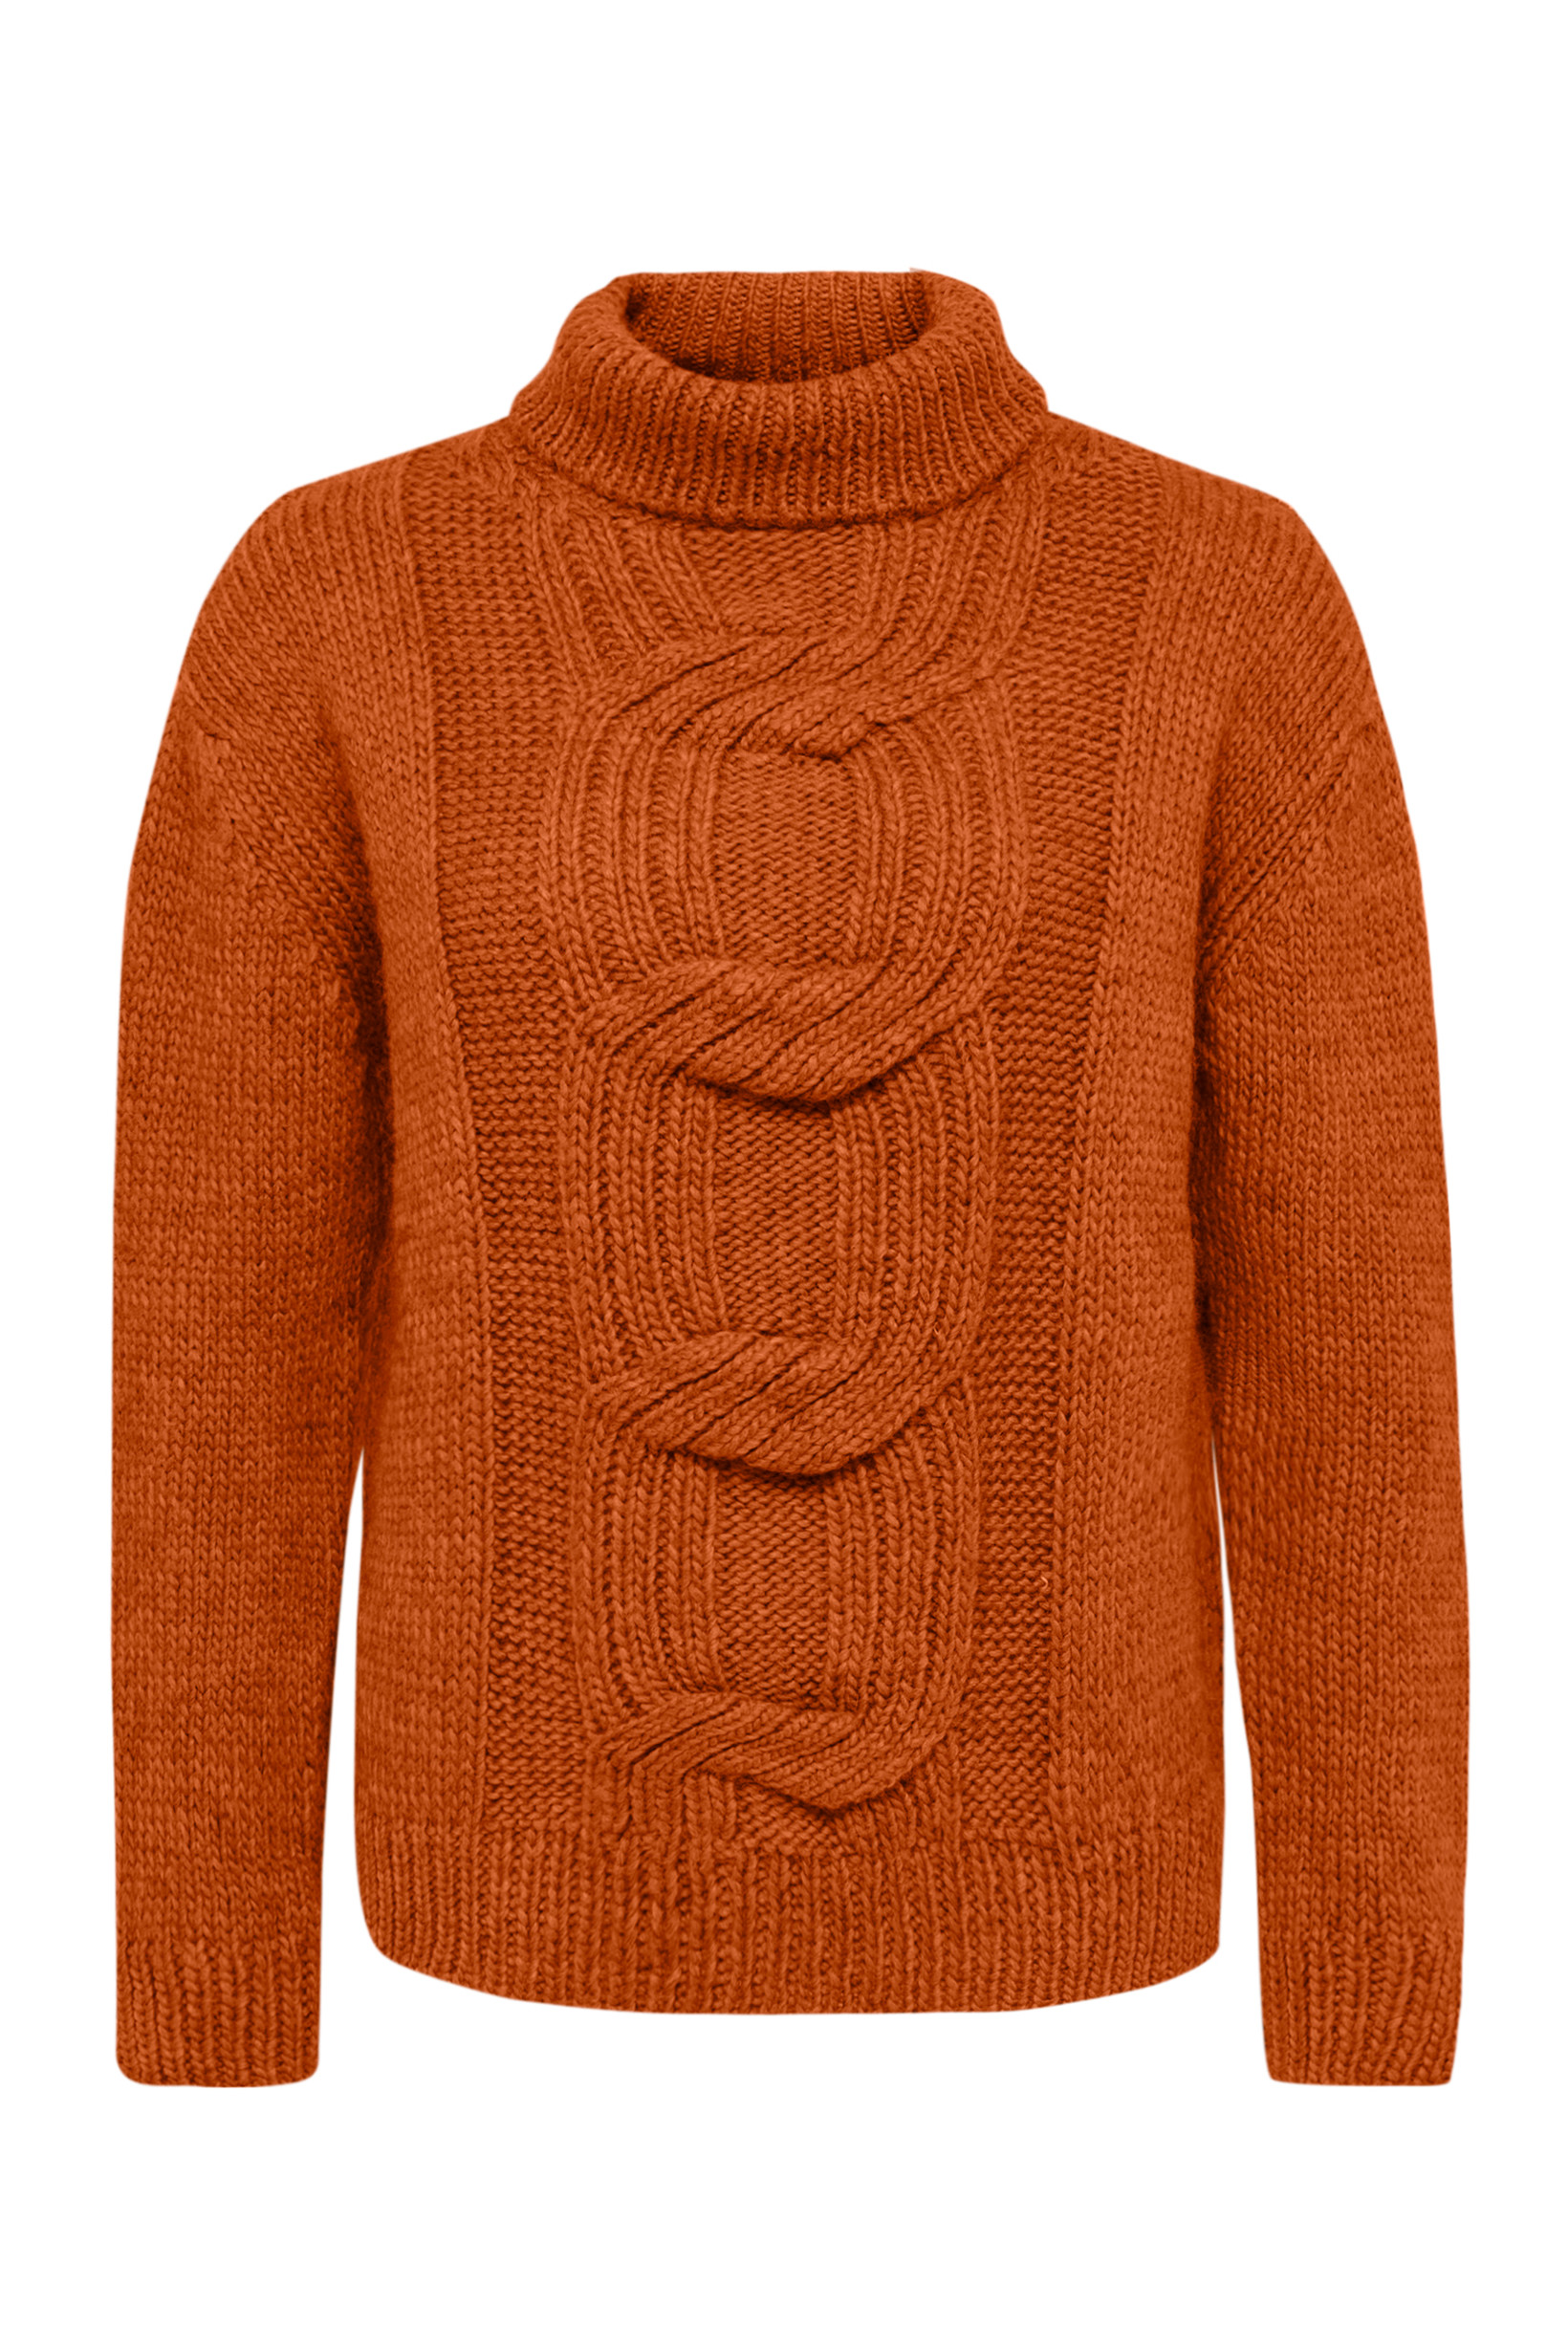 Image of   A-Twist Sweater i 3 Farver - Orange